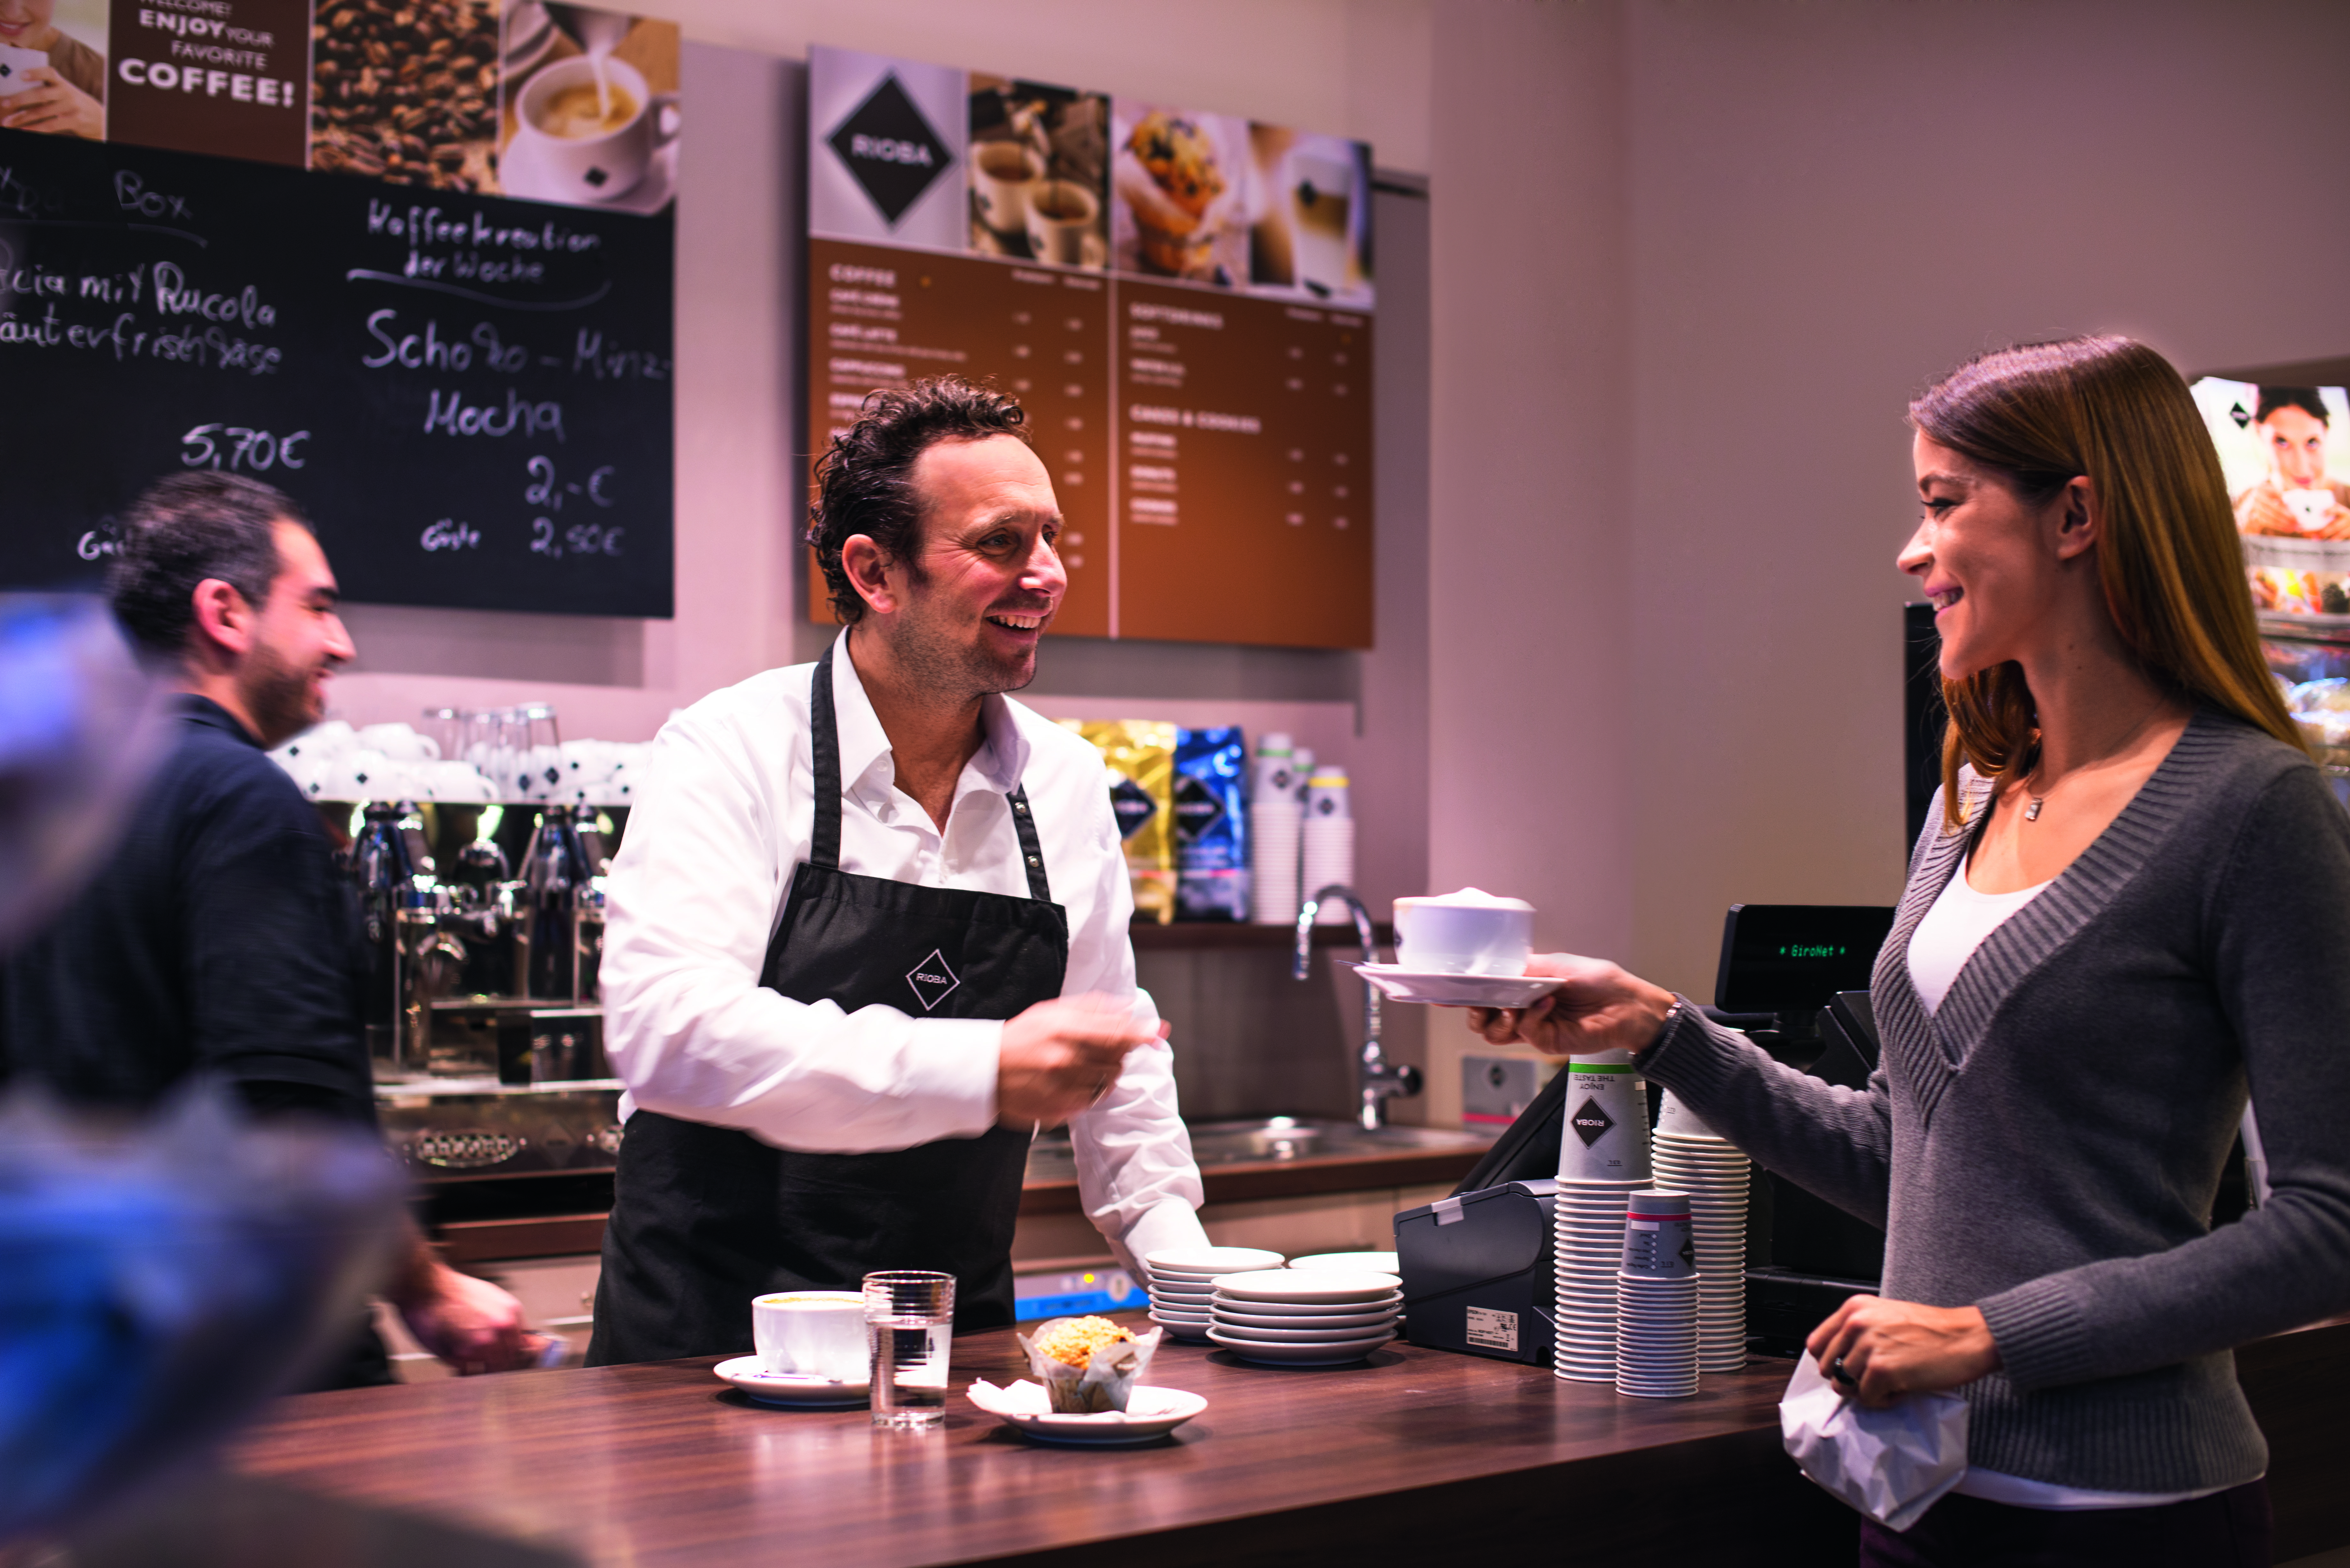 Staff and Customer in a Cafe